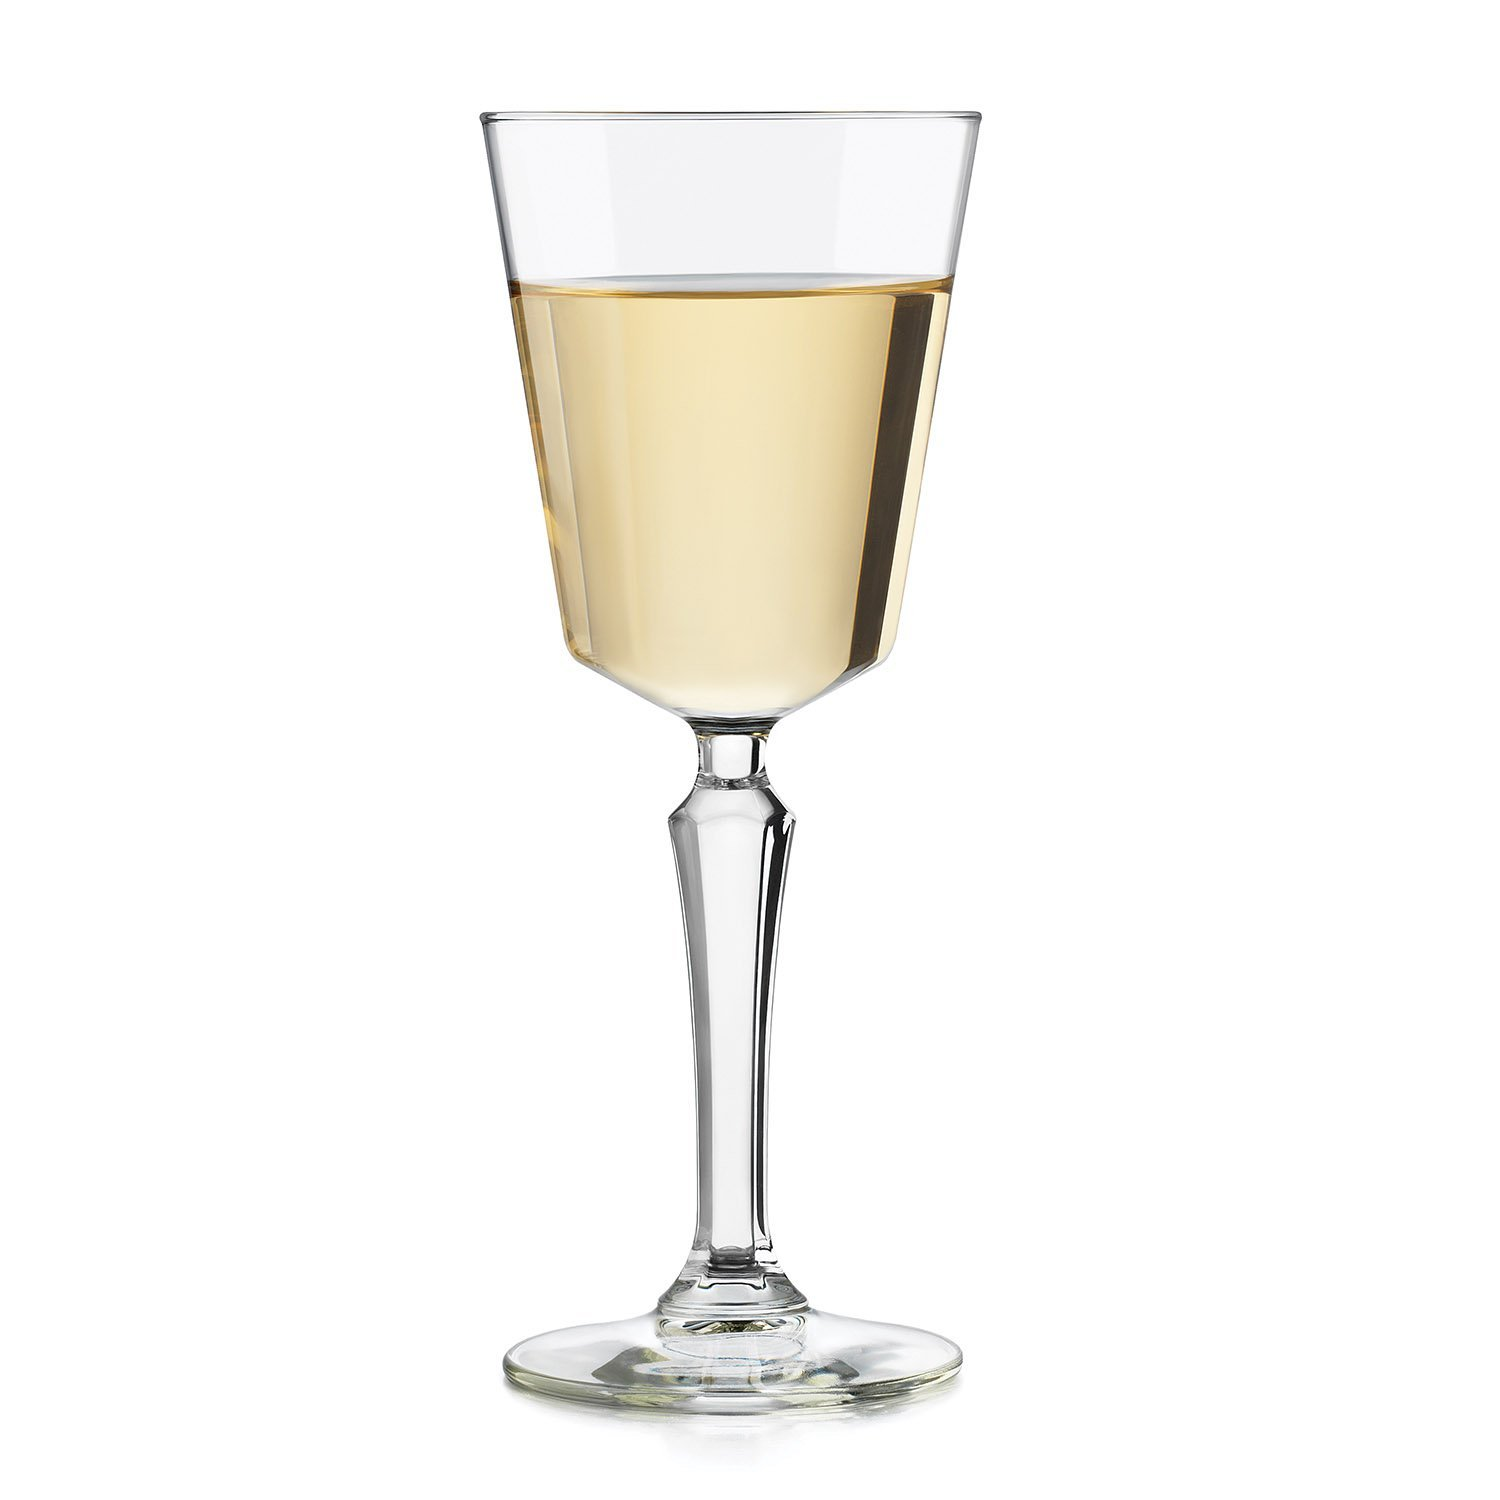 Libbey 4 Piece Capone White Wine Glasses Set in Clear